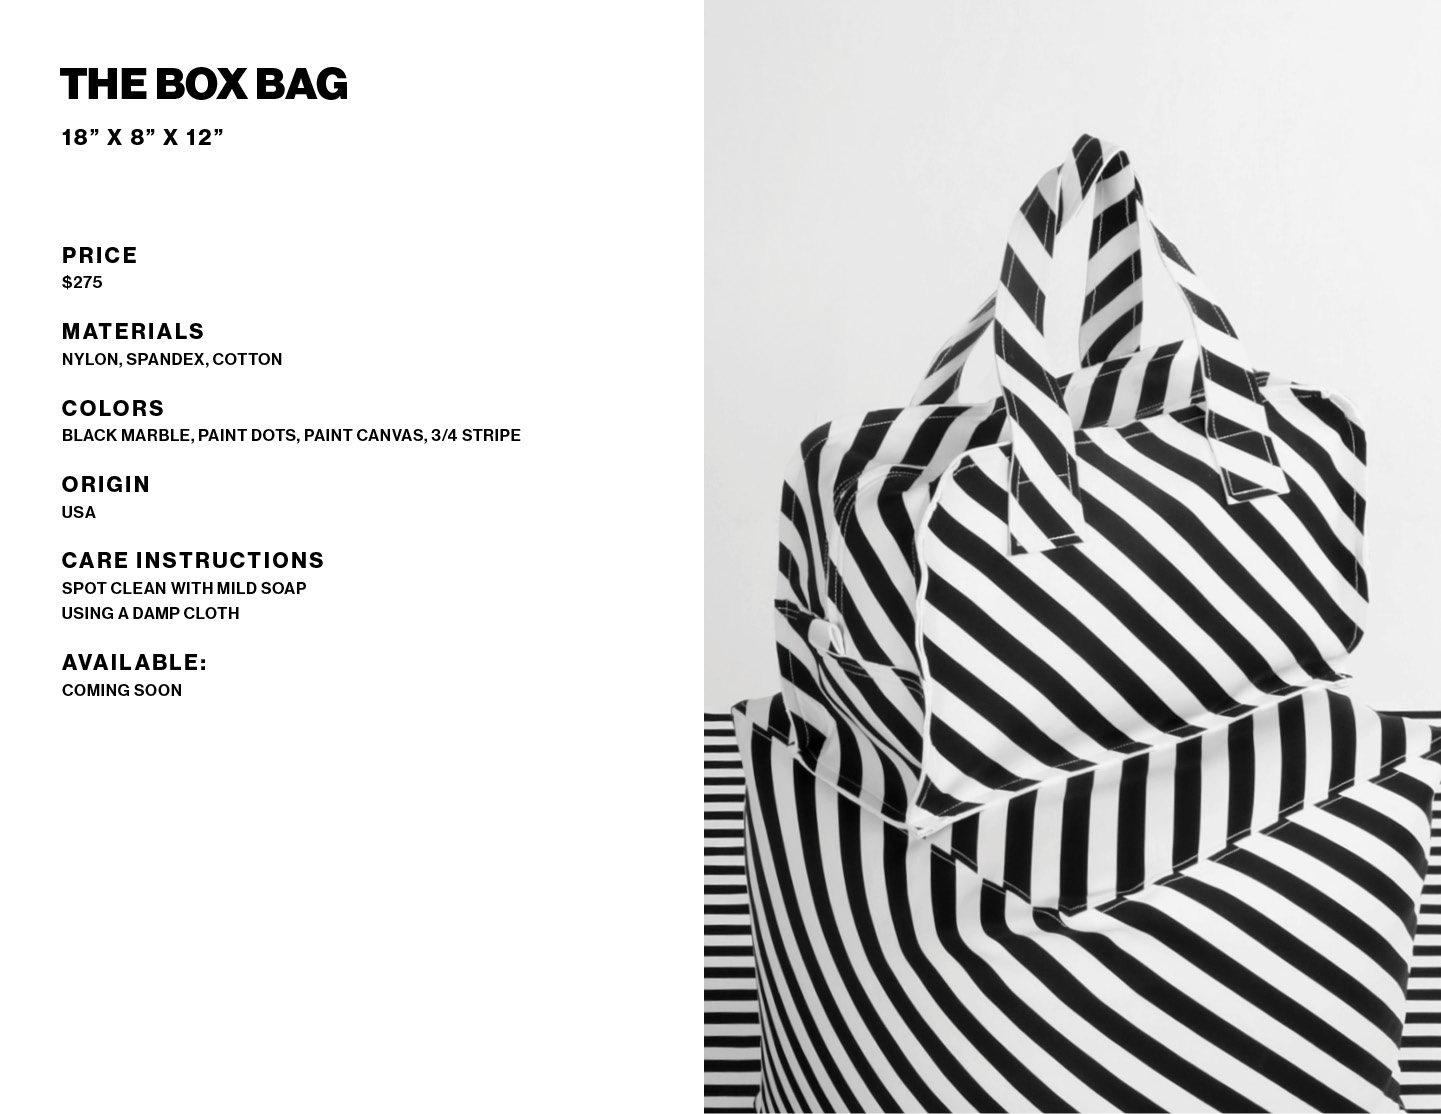 The Box Bag product info